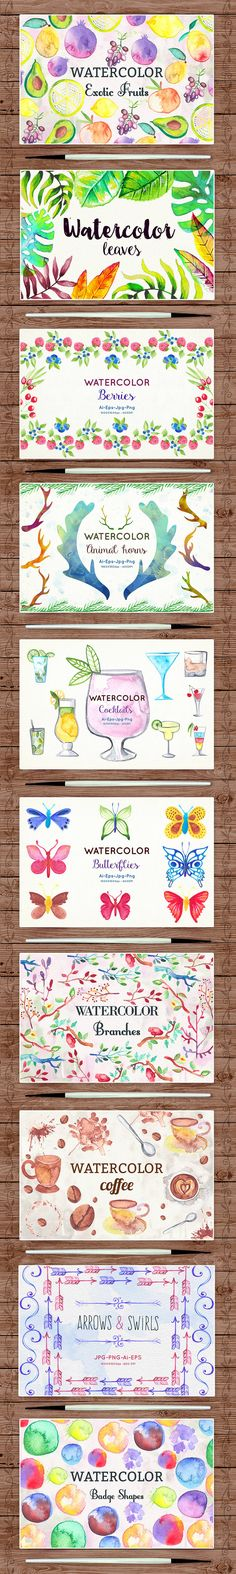 650+ Delightful Watercolor Clip-Art Elements - only $24! - MightyDeals